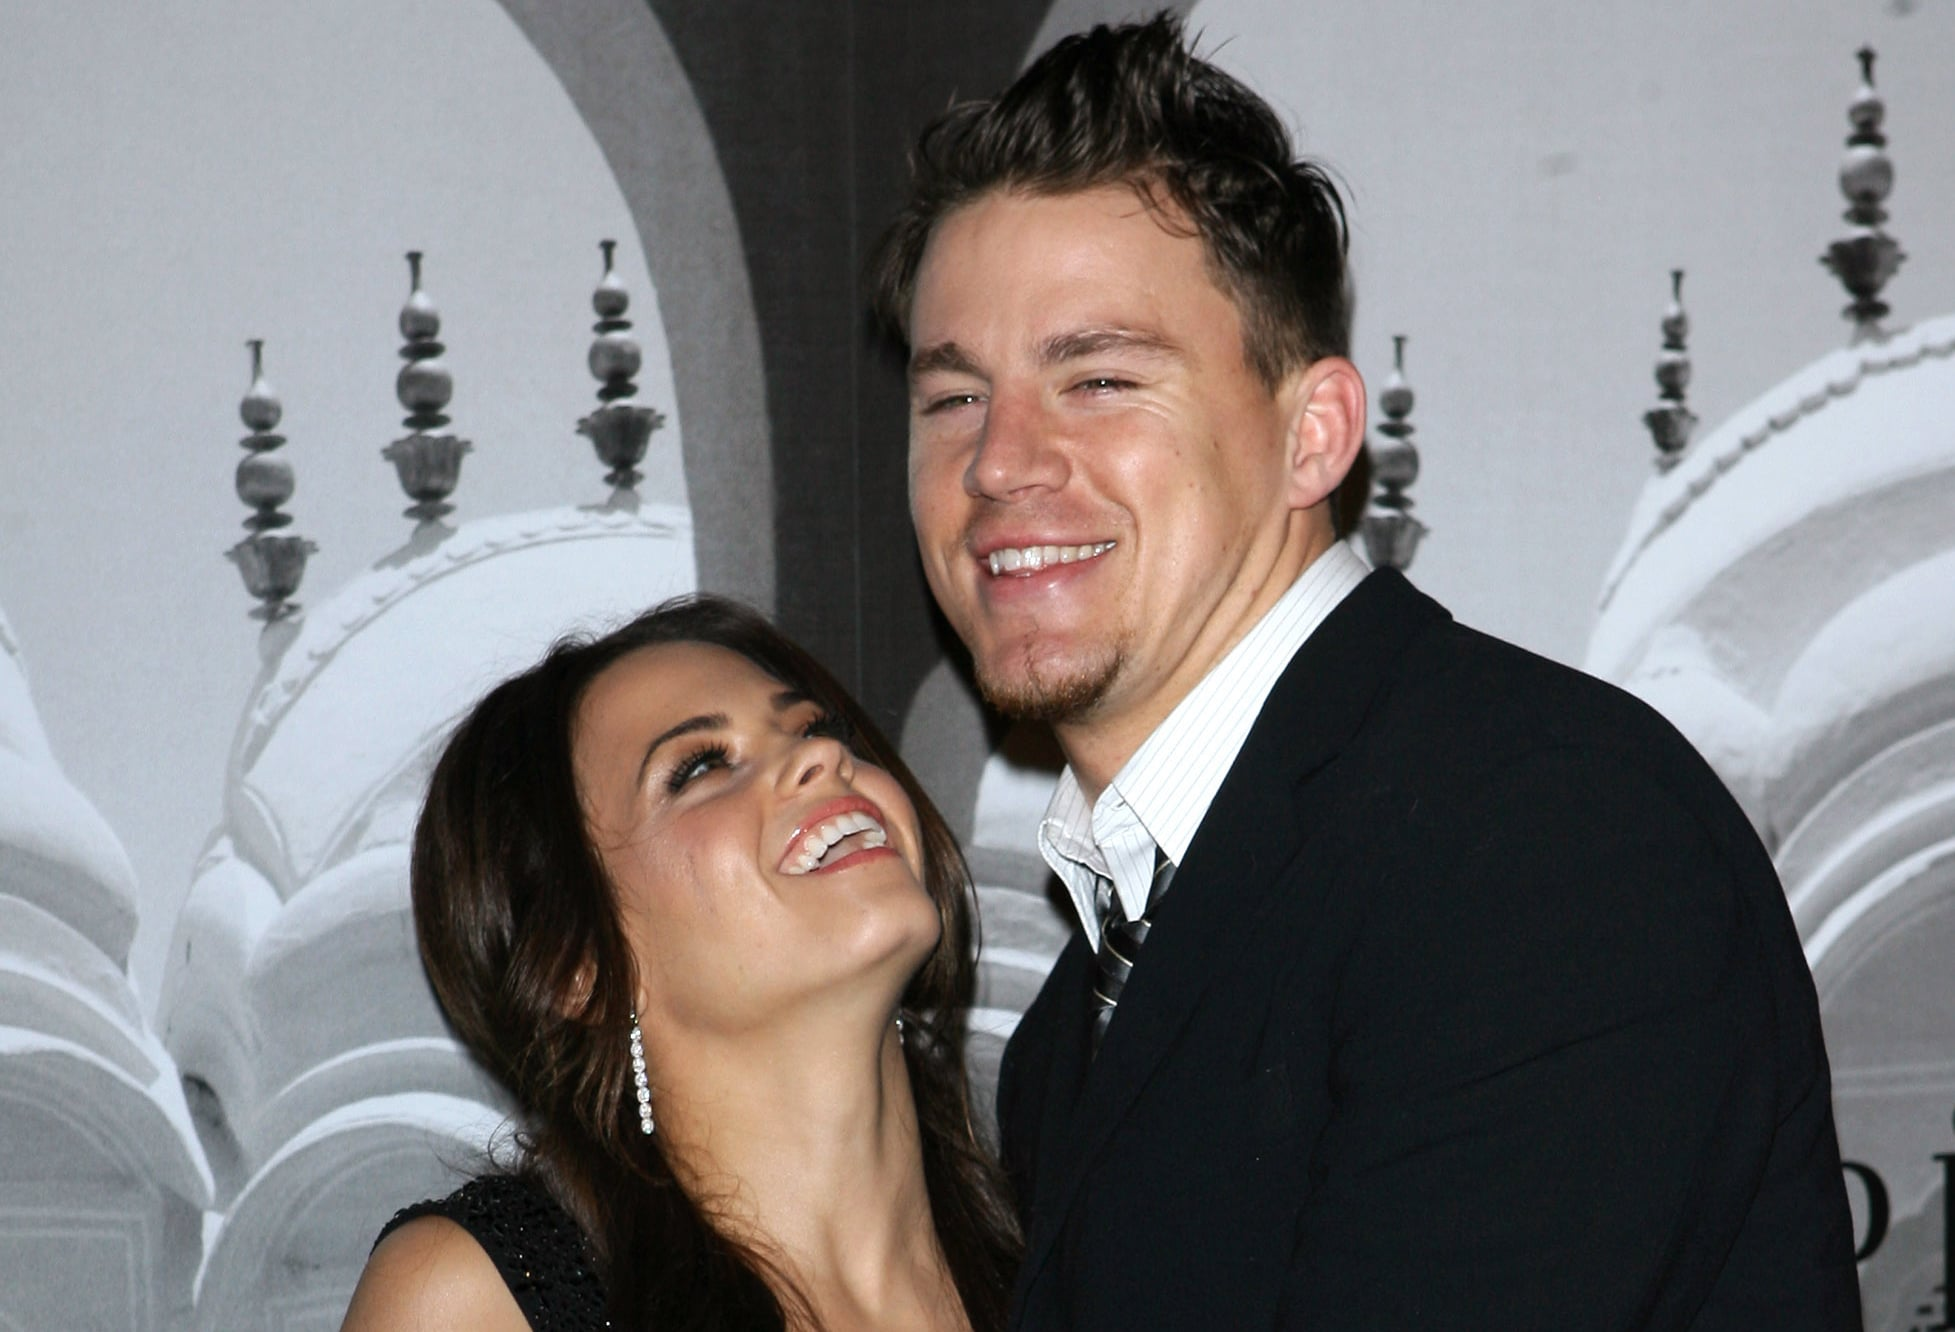 How did channing tatum and jenna dewan meet popsugar celebrity jenna dewan and channing tatum met back in 2006 while filming step up their love story was definitely one for the books channing previously admitted to m4hsunfo